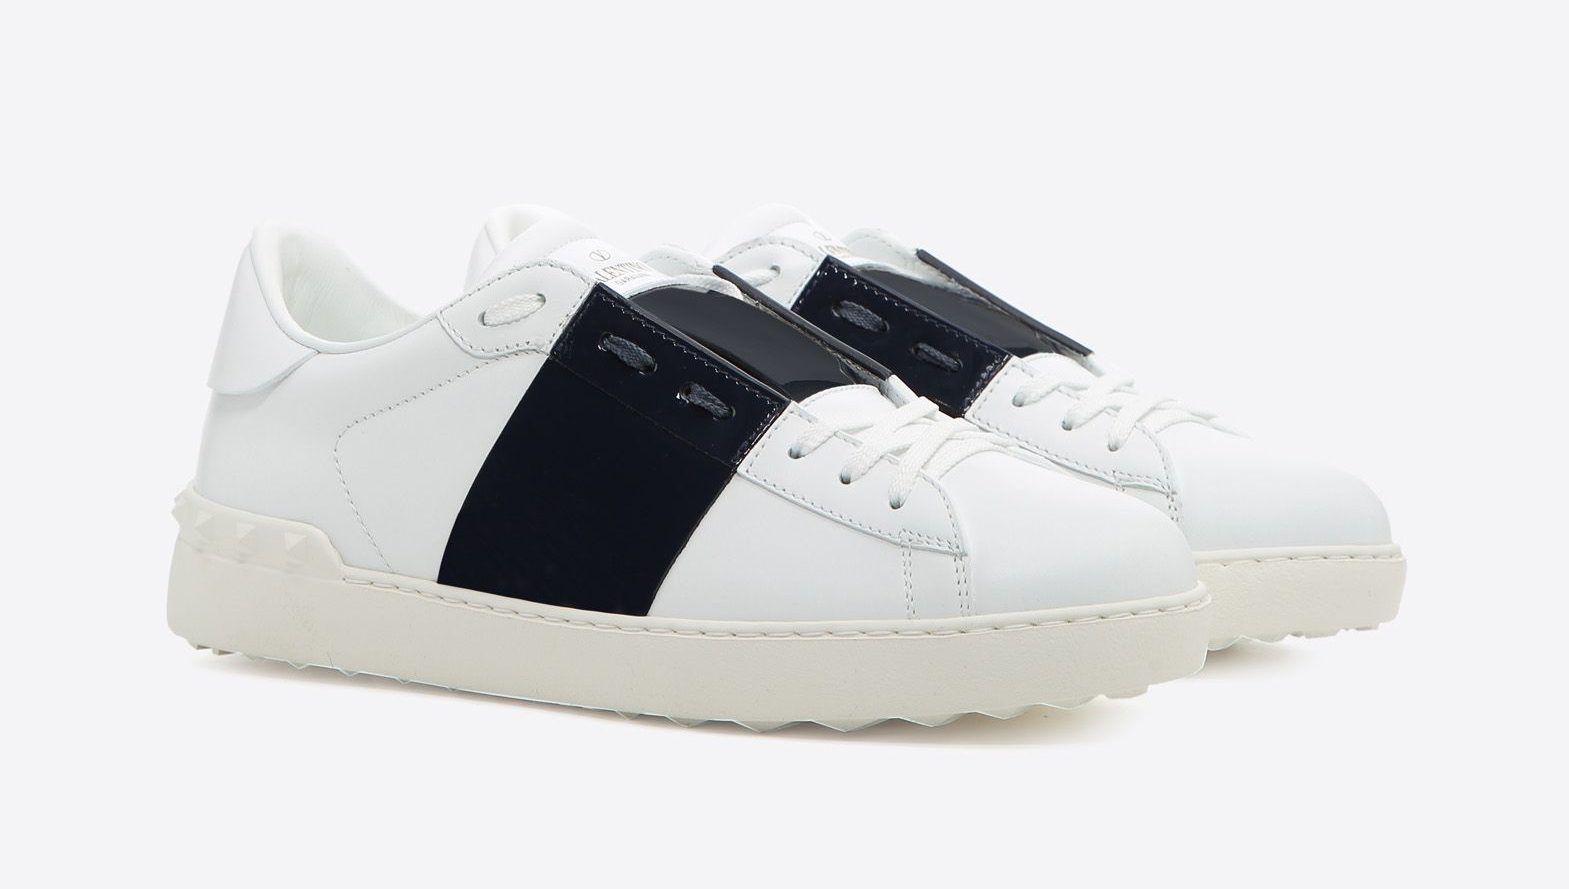 Father's Day Gifts - Gifts for Men - Gifts for Him - Gifts for Dads - Valentino Low Top Sneakers